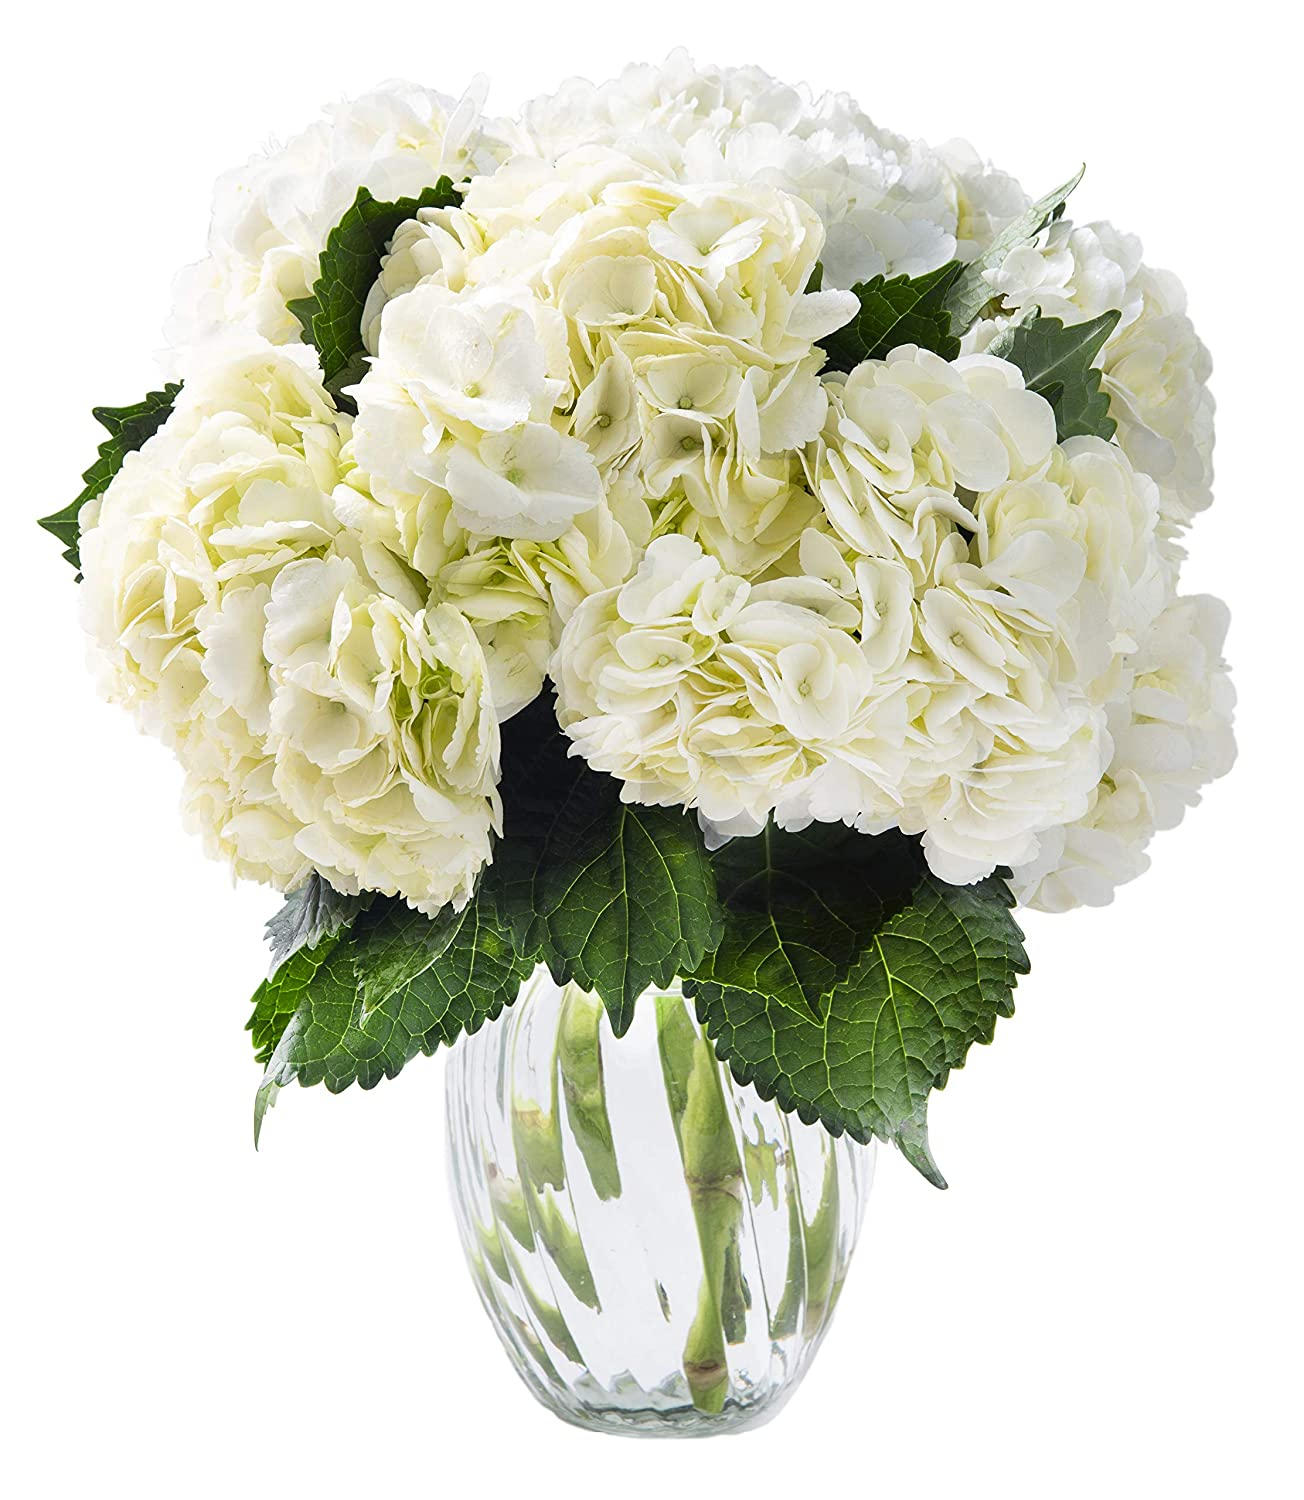 8b6813618327 KaBloom Summer Beauty Bouquet of 6 White Hydrangeas with Vase: Amazon.com:  Grocery & Gourmet Food